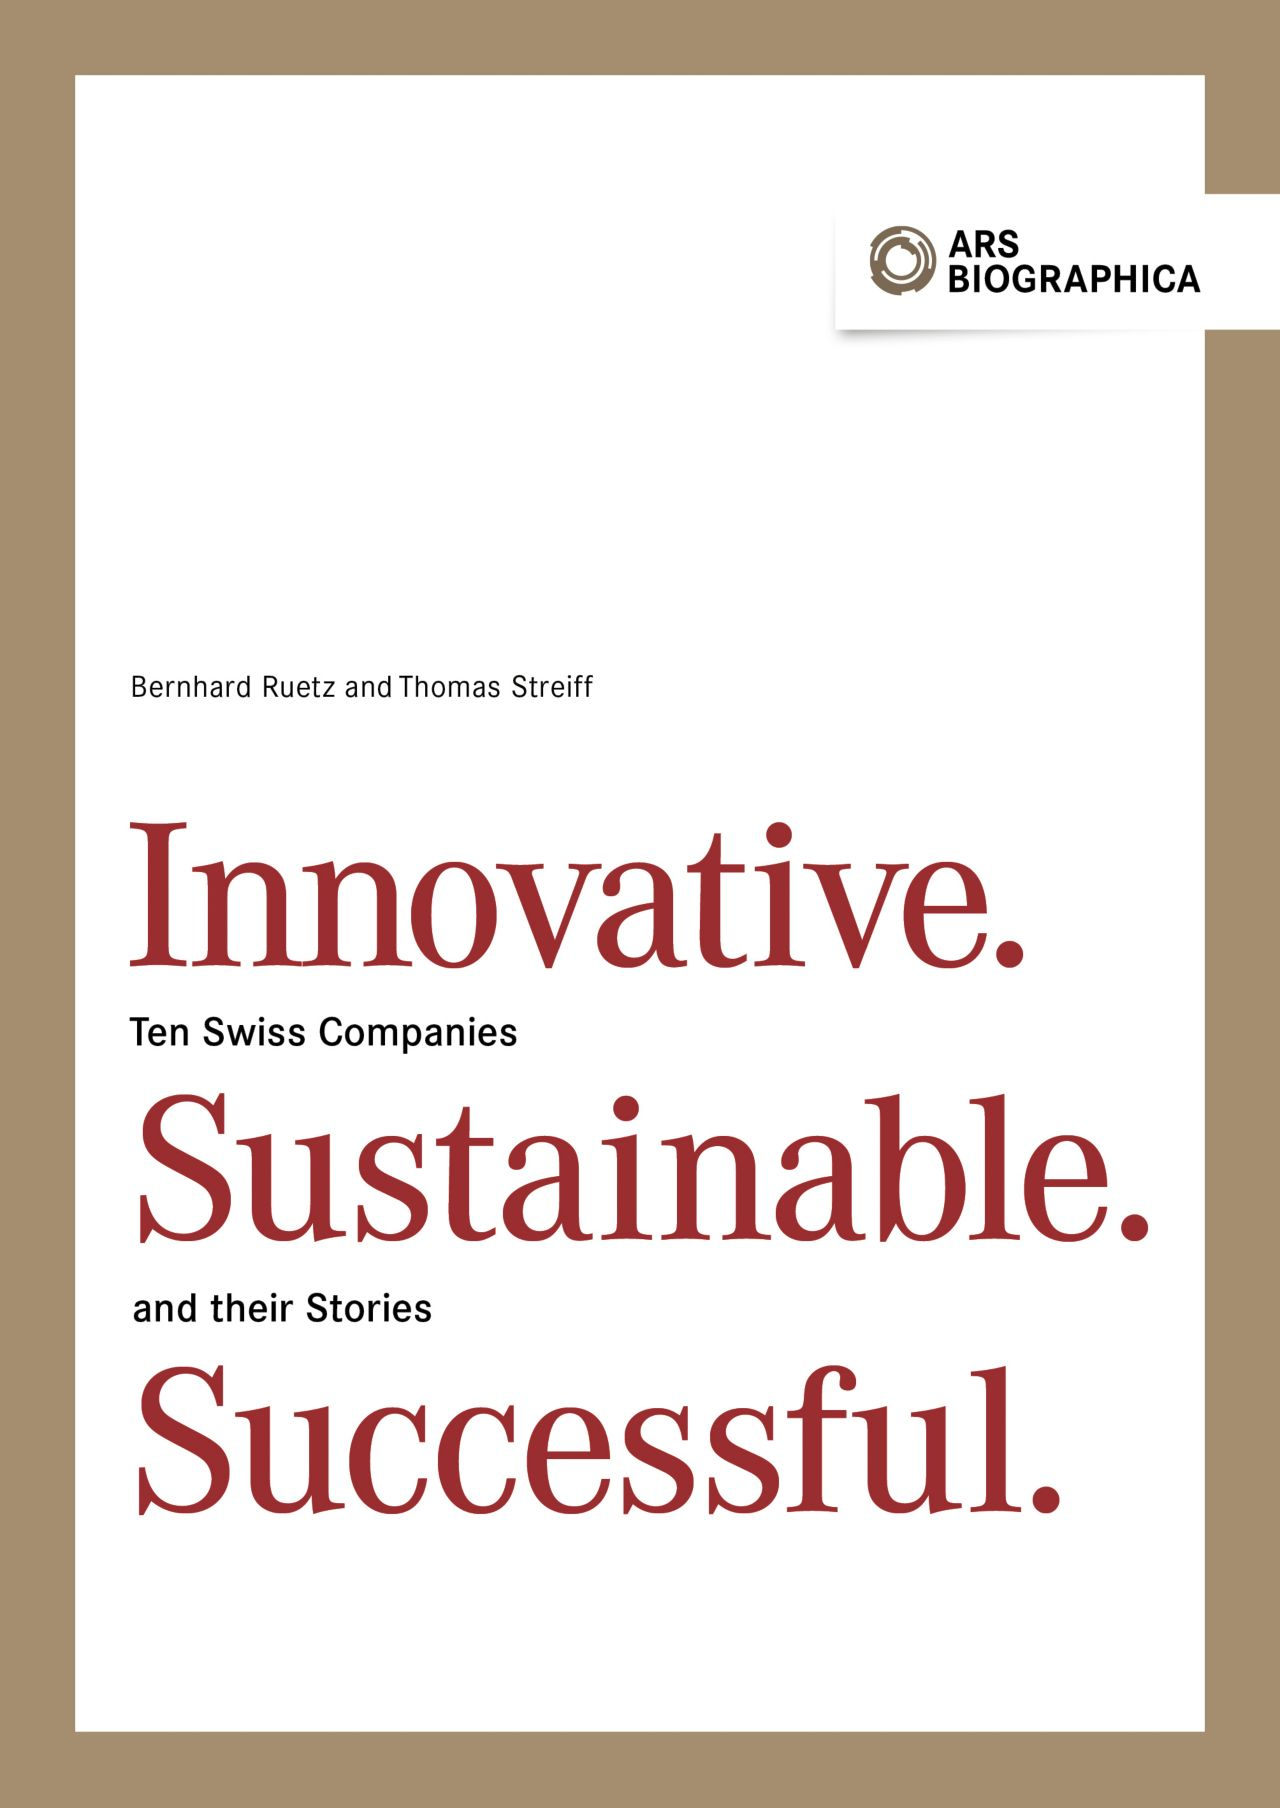 New Publication: Innovative. Sustaionable. Successful.